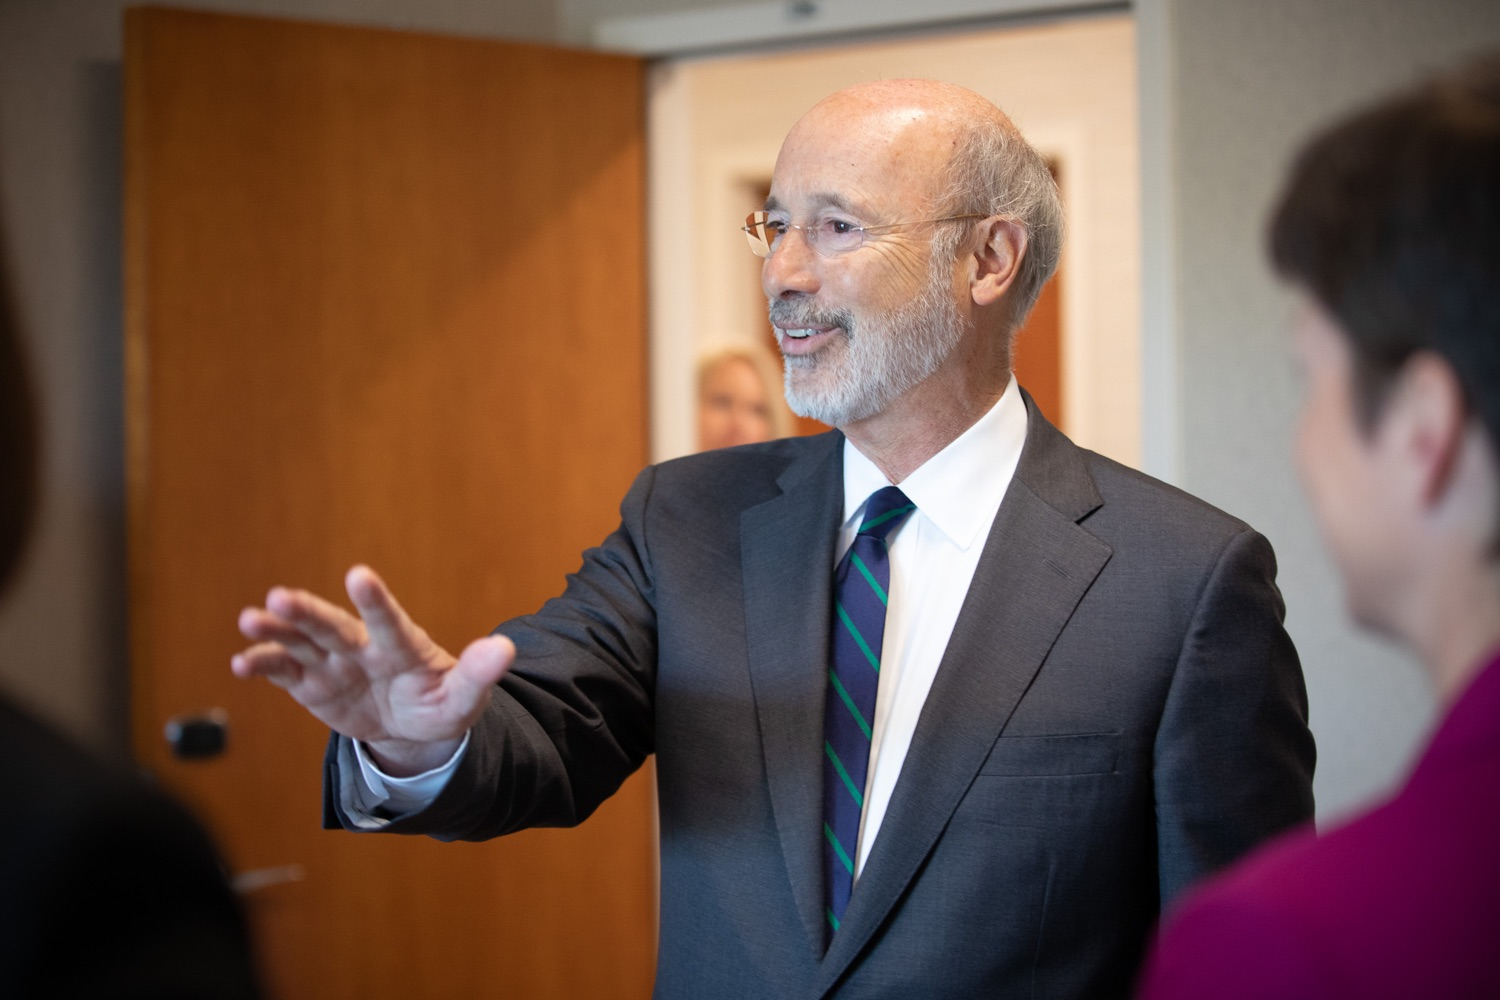 """<a href=""""https://filesource.wostreaming.net/commonwealthofpa/photo/17467_gov_opioids_dz_009.JPG"""" target=""""_blank"""">⇣Download Photo<br></a>Boalsburg, PA  Governor Tom Wolf speaking with summit attendees. Governor Tom Wolf today kicked off his administrations first Opioid Command Center Opioid Summit: Think Globally, Act Locally, which brought together 200 individuals helping their communities fight the opioid crisis, including community organizations, non-profits, schools, health care workers, addiction and recovery specialists, and families affected by the opioid crisis.  Tuesday, October 1, 2019"""